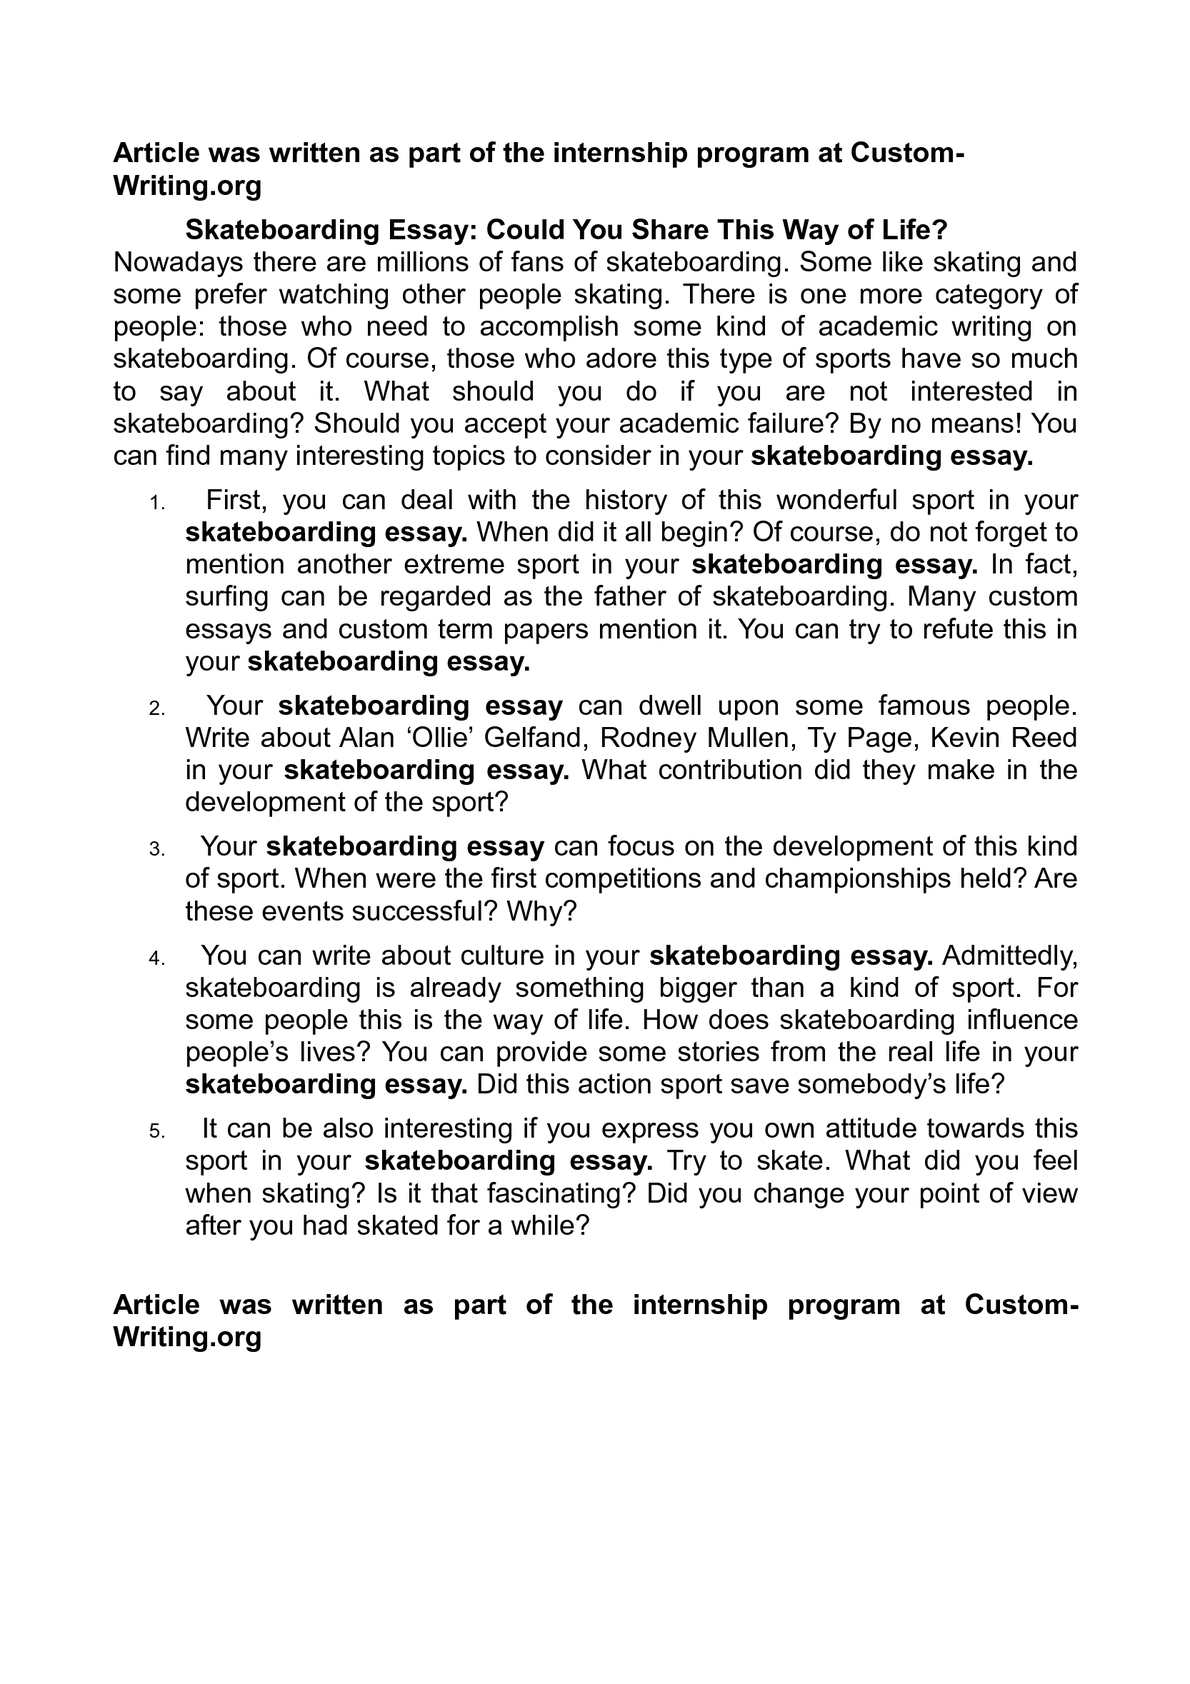 a way of life essay Sample persuasive essay on vegetarianism as a healthier way of life persuasive essay: is vegetarianism a healthier way of life.